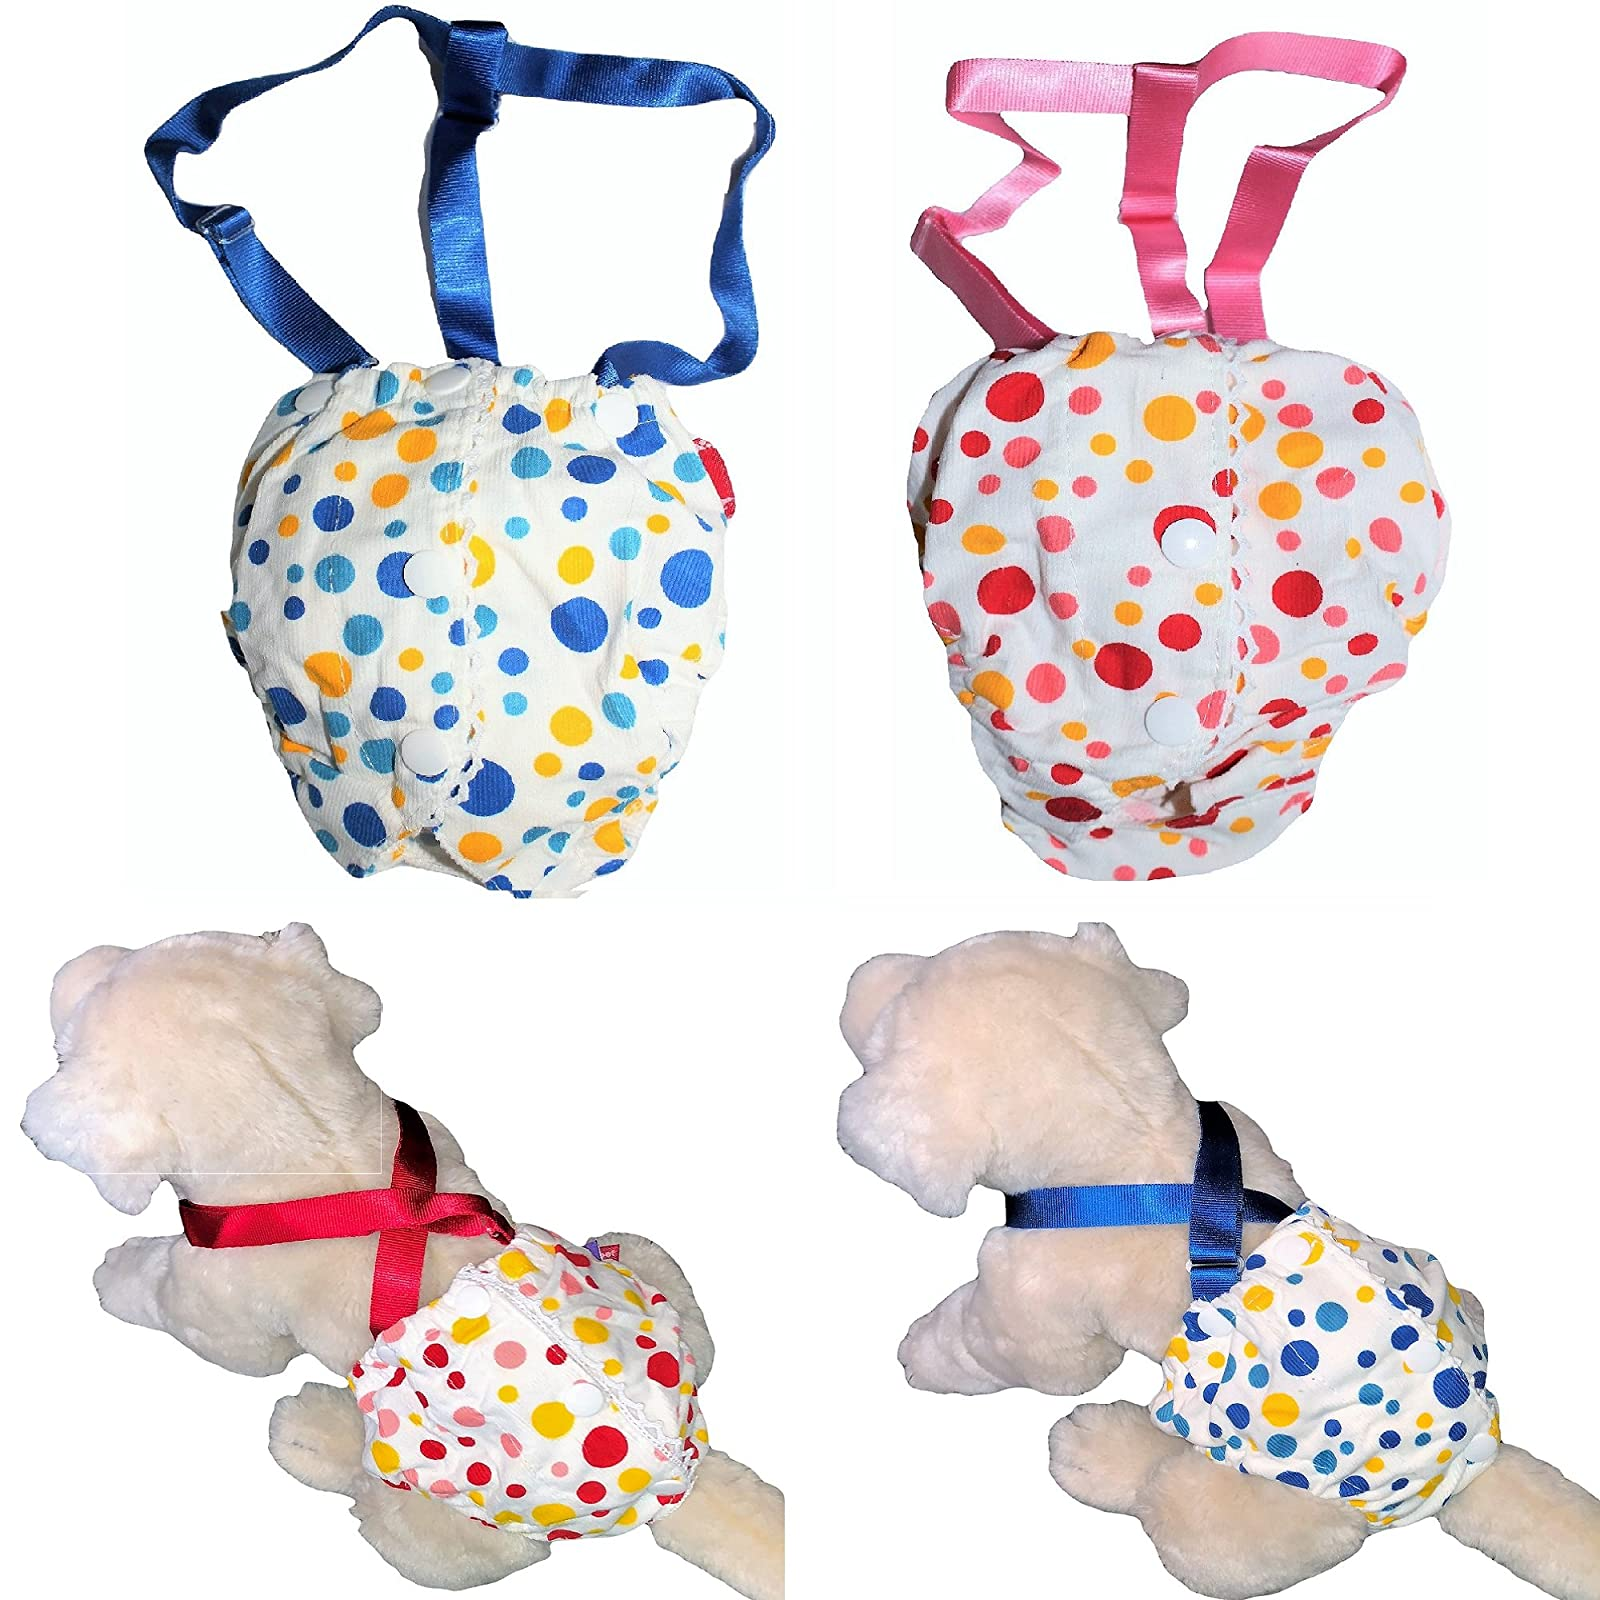 FunnyDogClothes Female Dog Diaper With Suspenders COTTON - 5